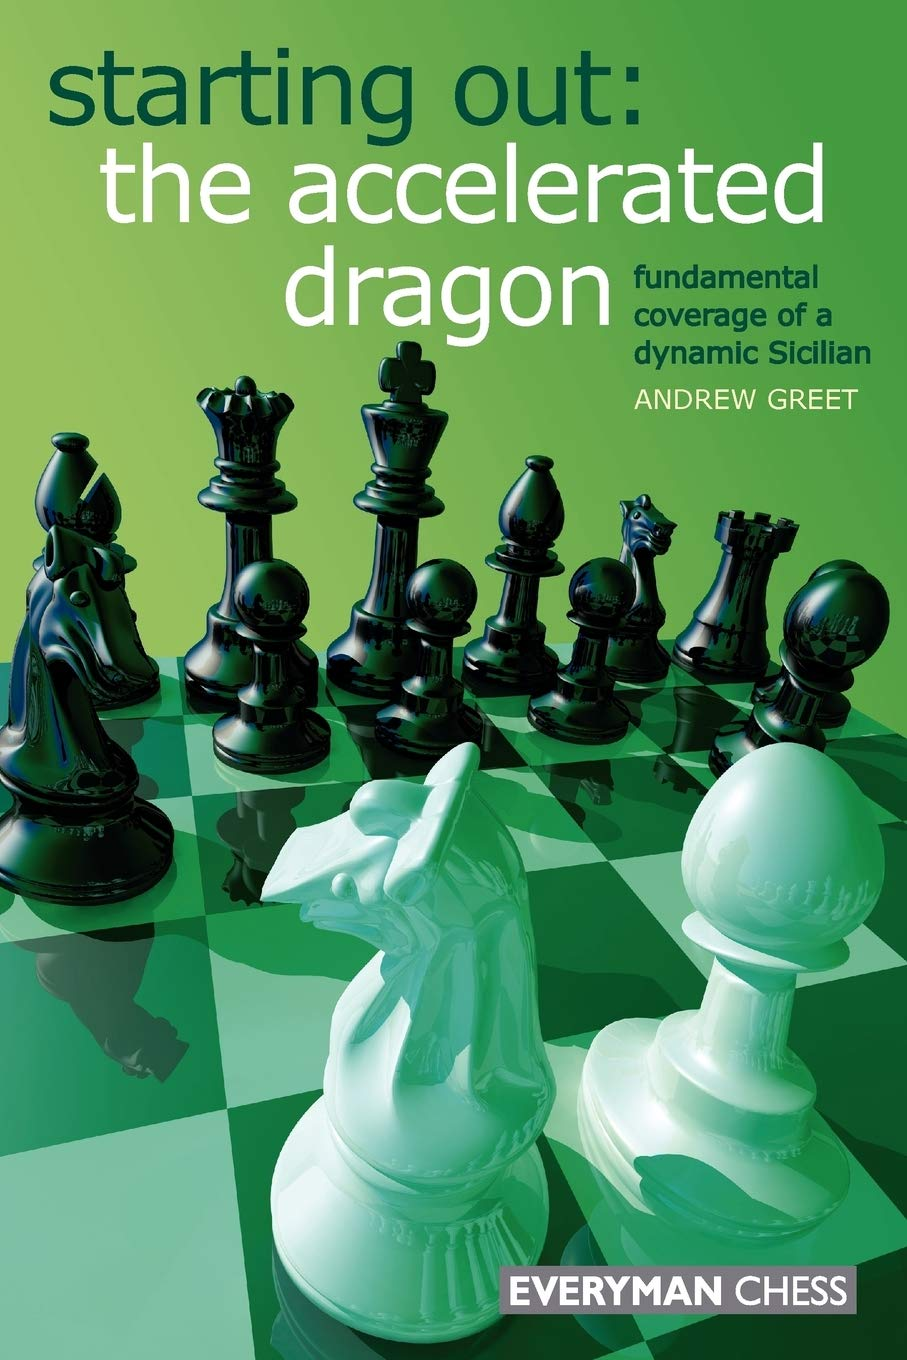 Starting Out : The Accelerated Dragon, Andrew Greet, Everyman, 2008